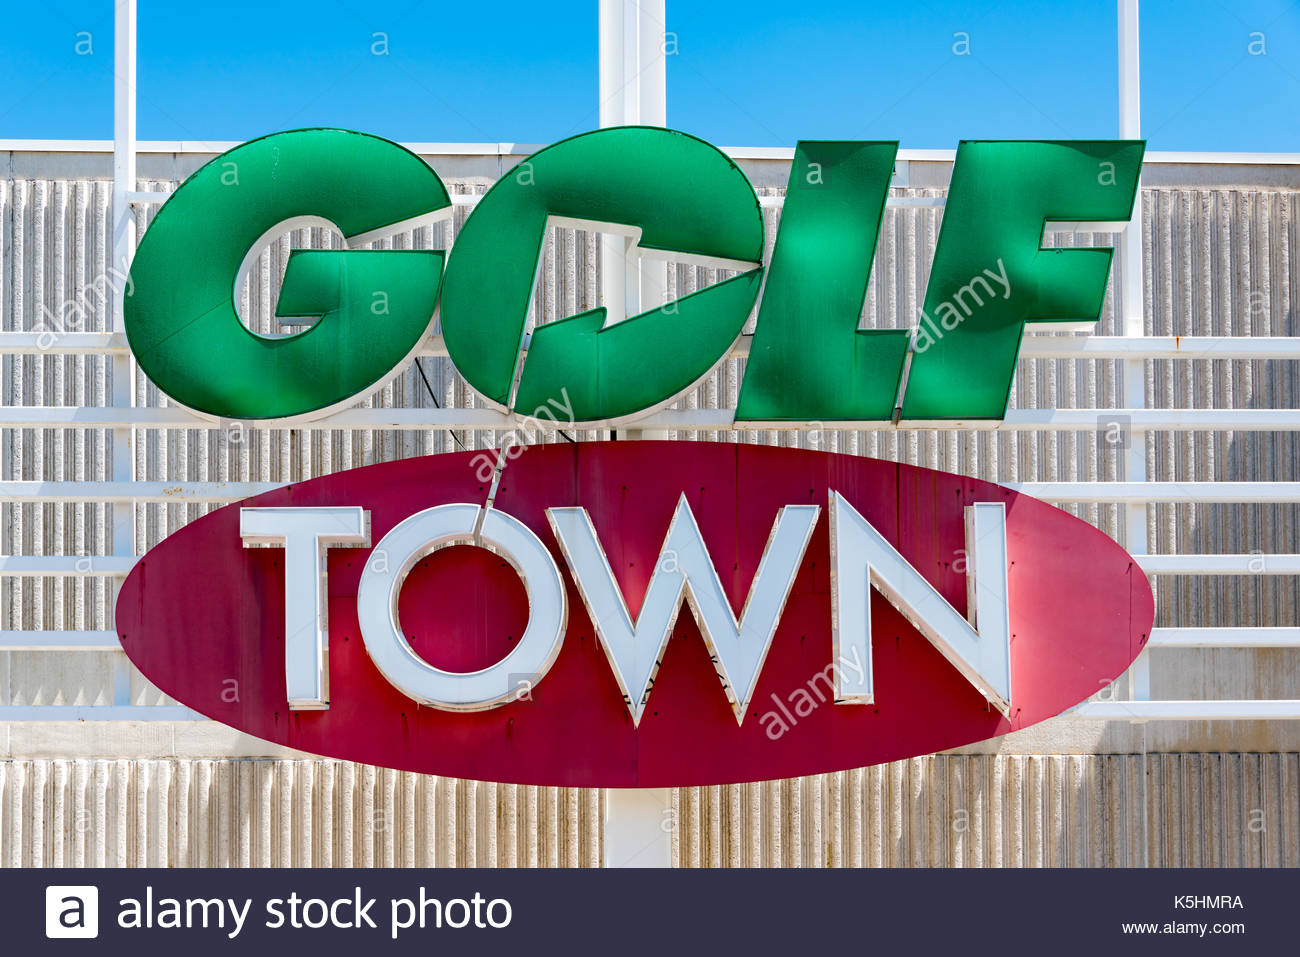 Golf Town signage on its store in Canada. It has all items related to golf from clubs, bags and balls, to footwear, apparel, accessories and gifts at  - Stock Image